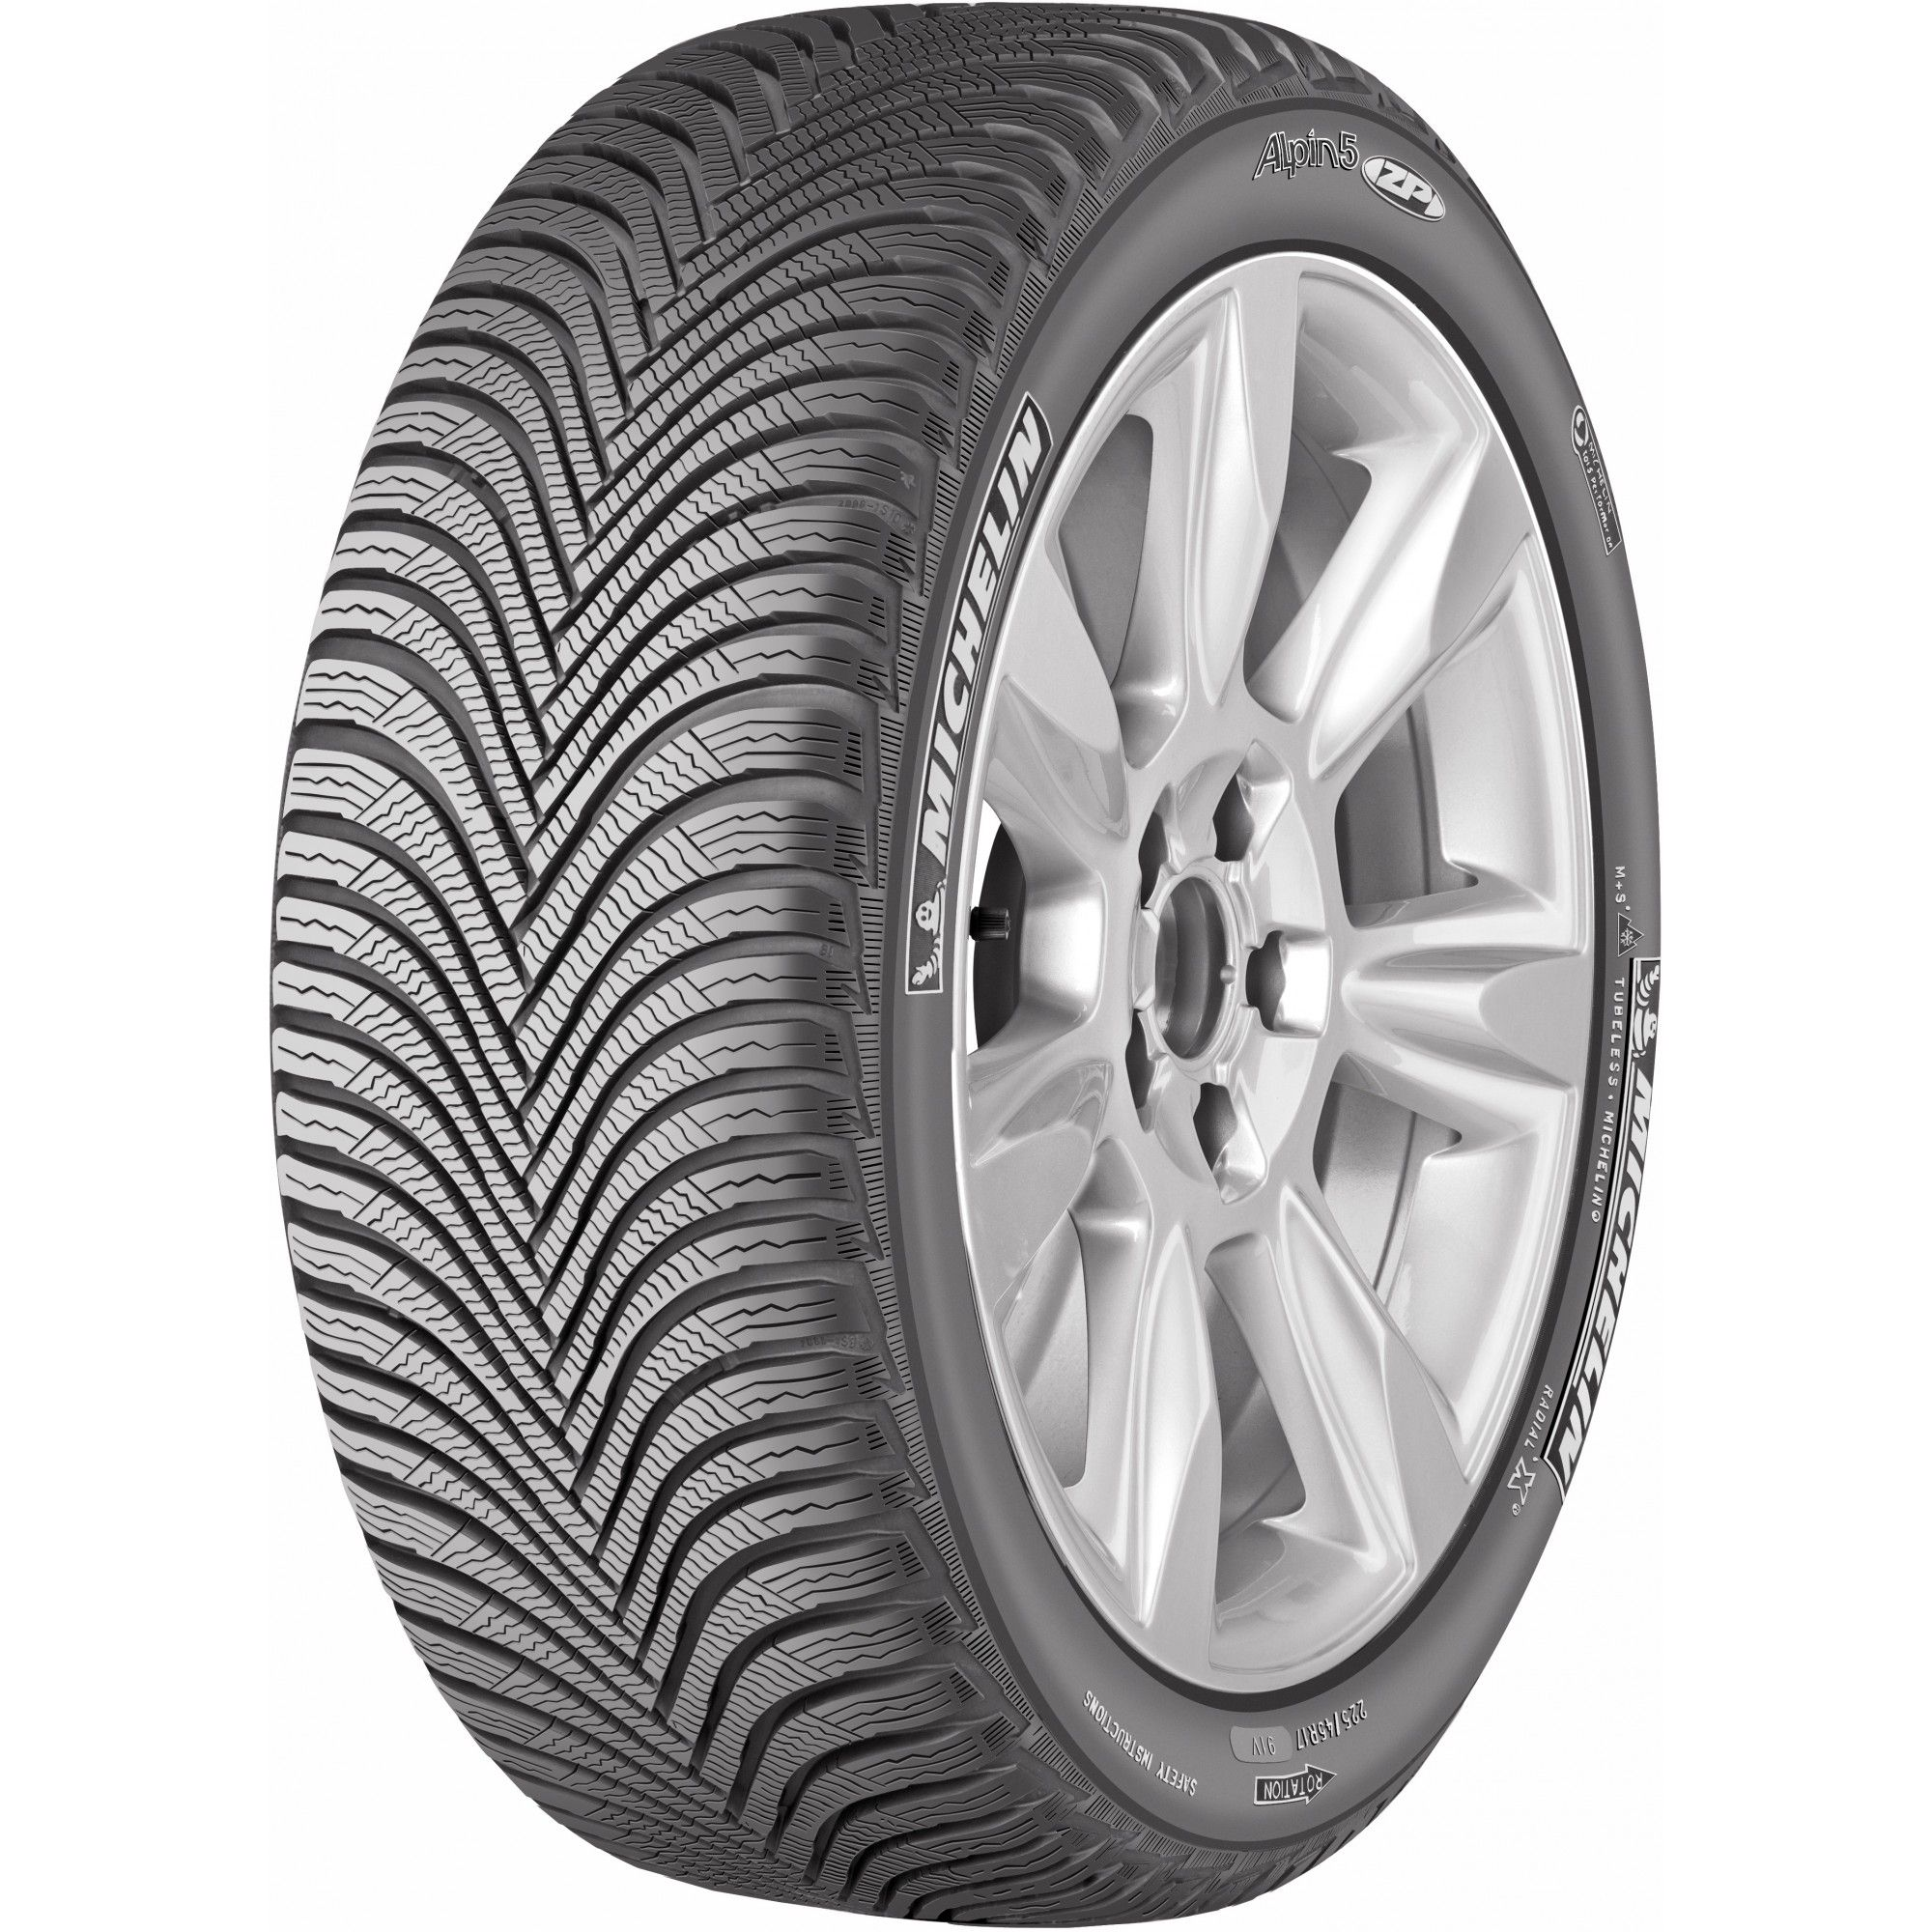 Зимняя шина Michelin Alpin 5 215/60 R17 100H